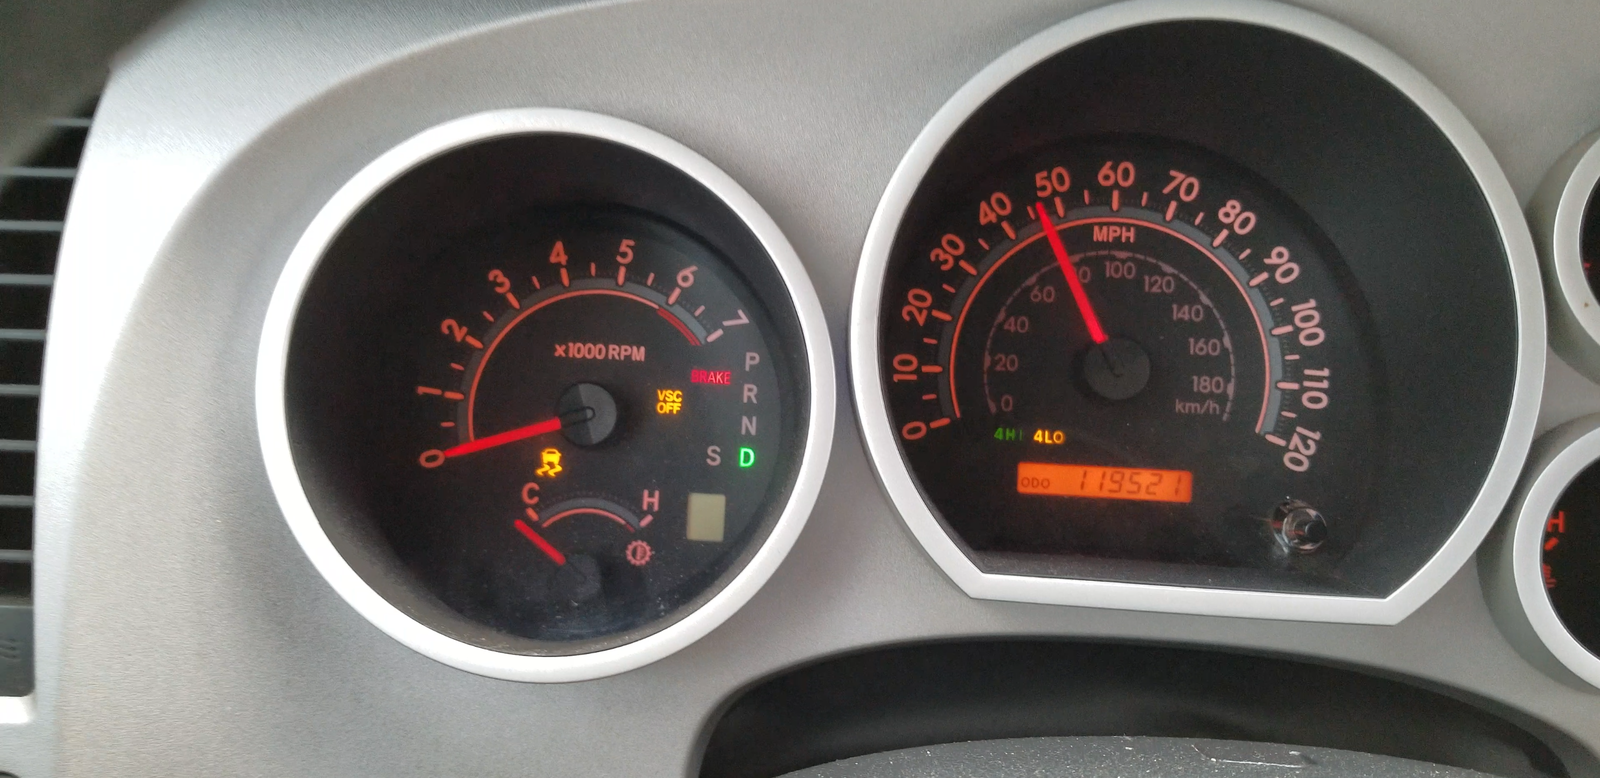 ... indicator lights flashing and speedometet bounces up and down while  accelerating. check engine light does not come on. Hooked up obd2 meter on  it to ...